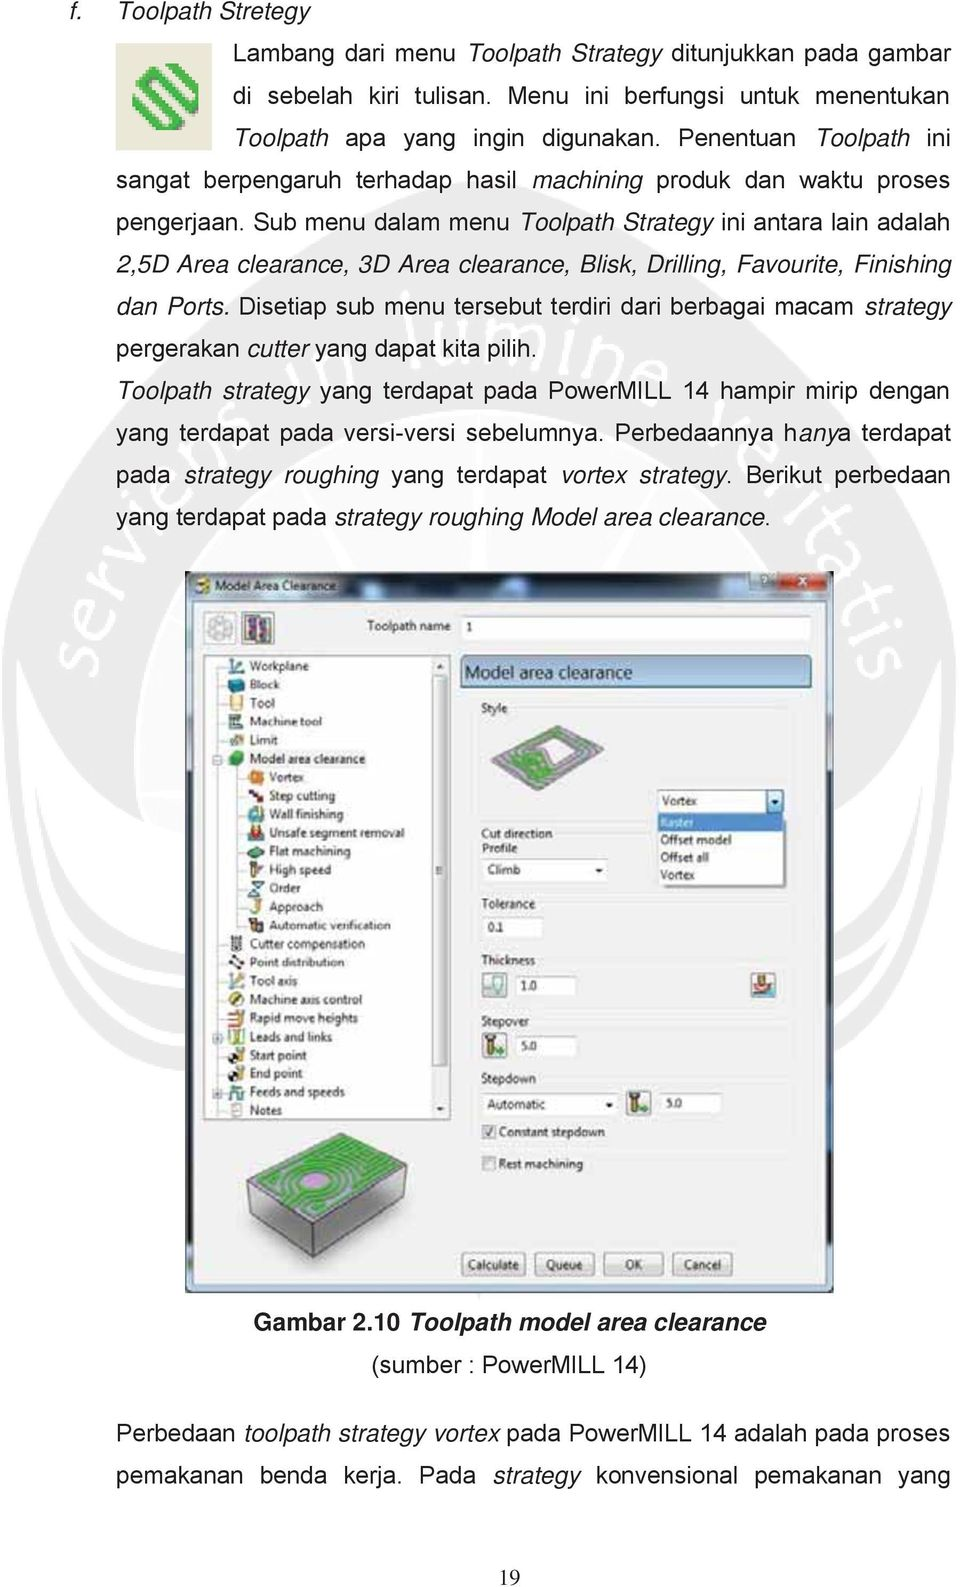 Sub menu dalam menu Toolpath Strategy ini antara lain adalah 2,5D Area clearance, 3D Area clearance, Blisk, Drilling, Favourite, Finishing dan Ports.